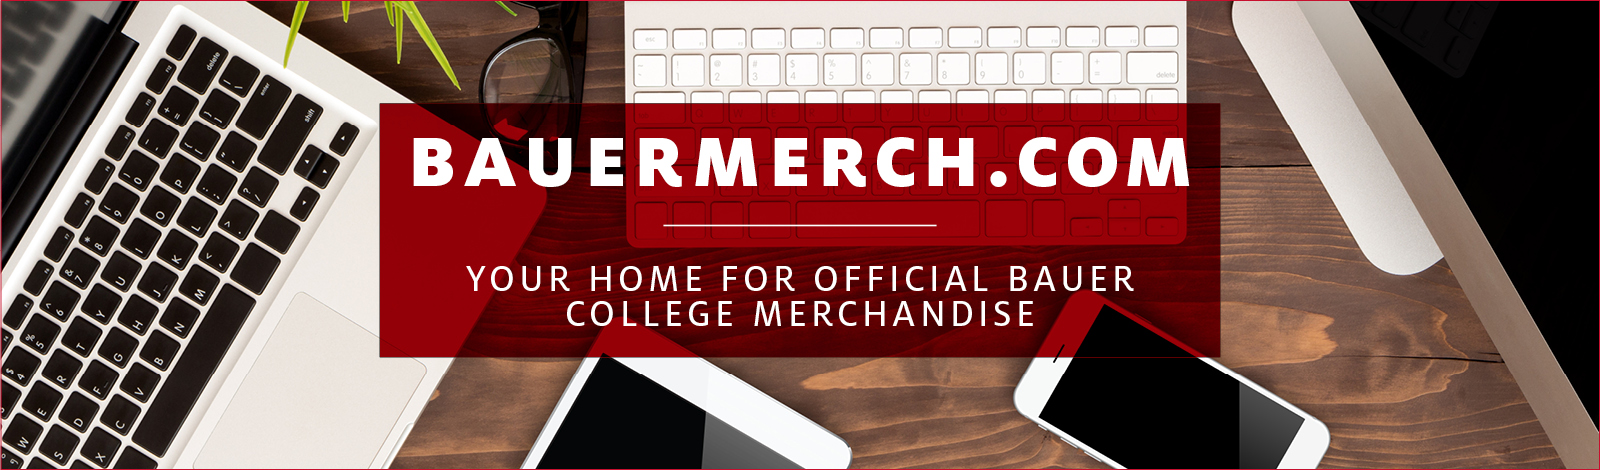 Welcome To BauerMerch.com